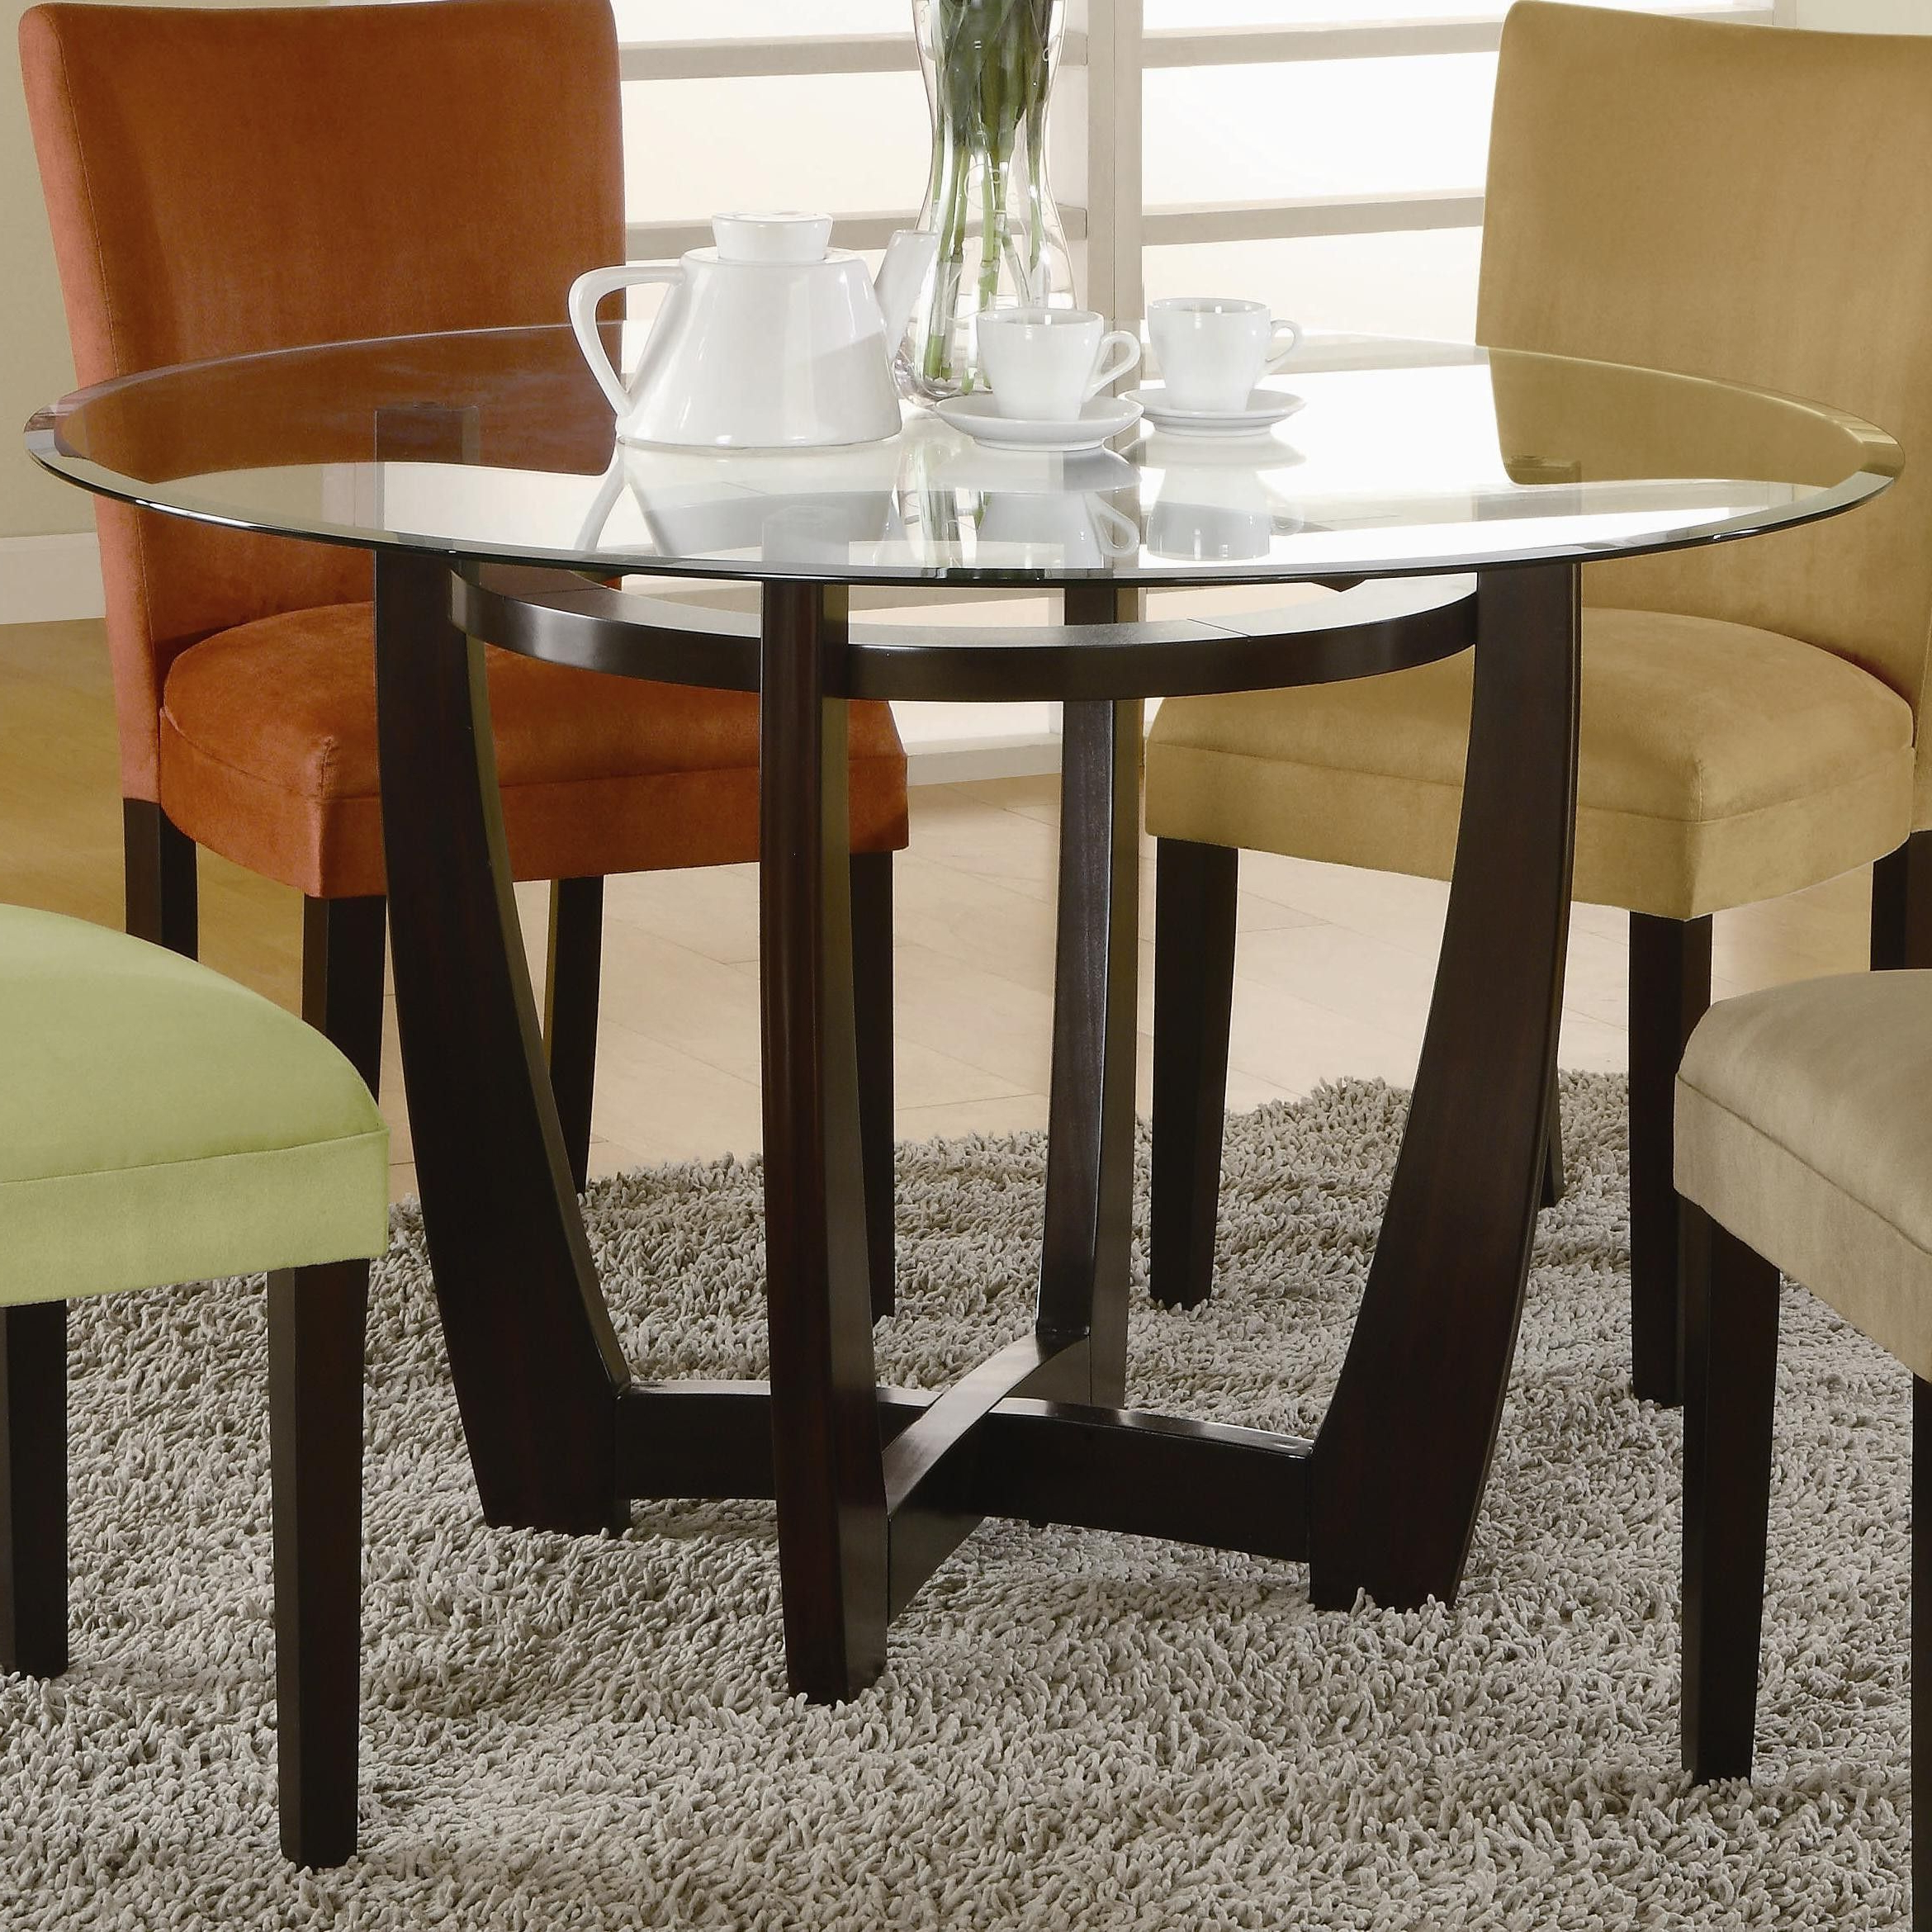 Round Glass Top Dining Tables regarding Preferred Round Glass Top Dining Table With Wooden Base Home